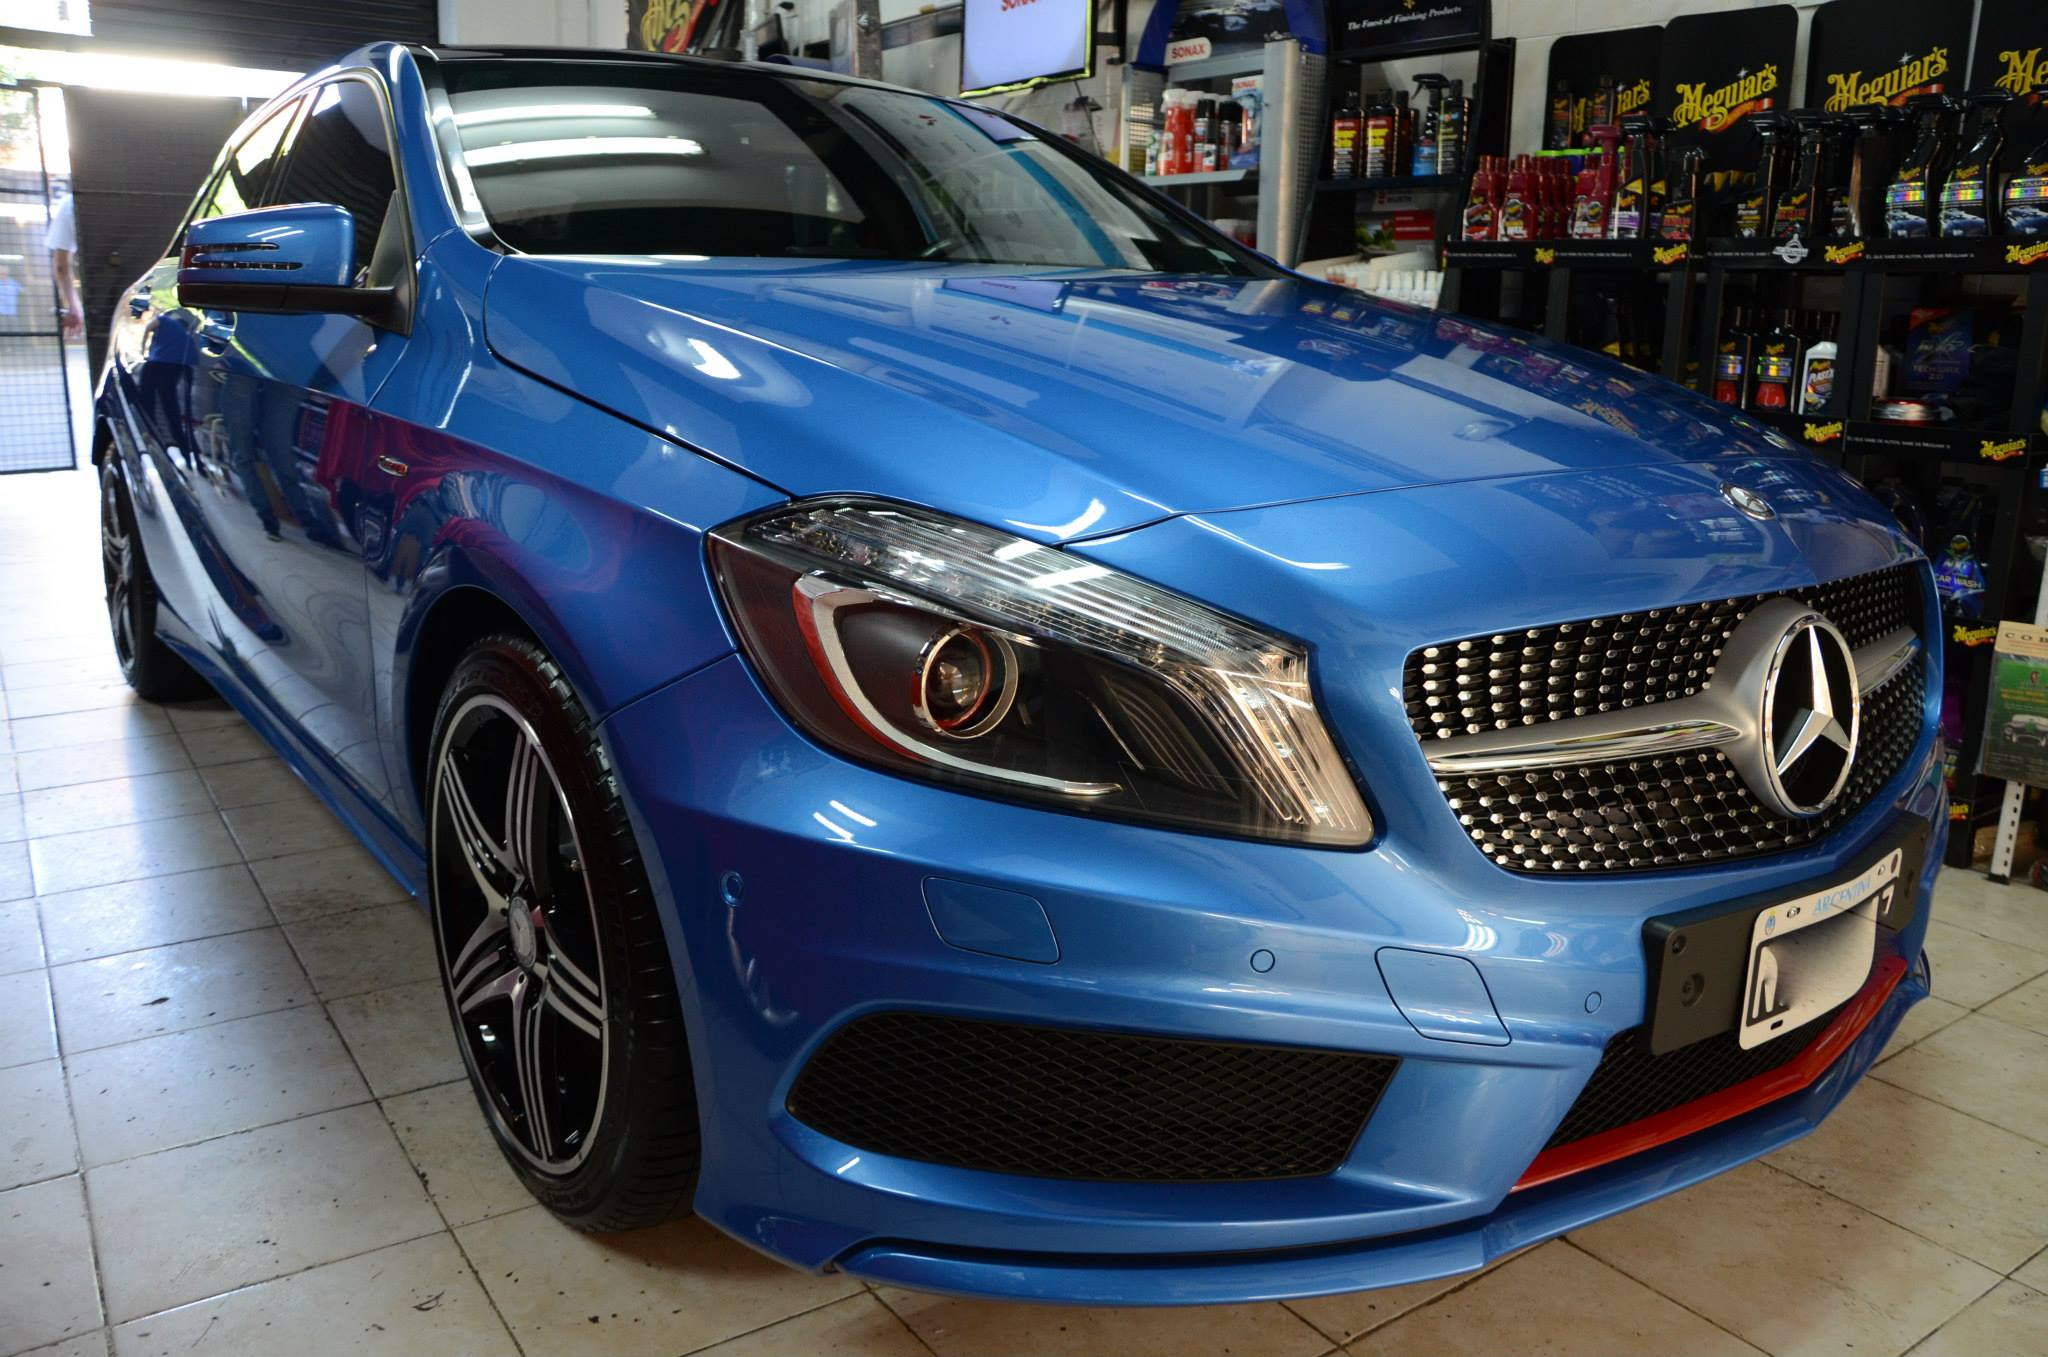 Mercedes benz a250 shinycars san isidro for Mercedes benz fayetteville ar